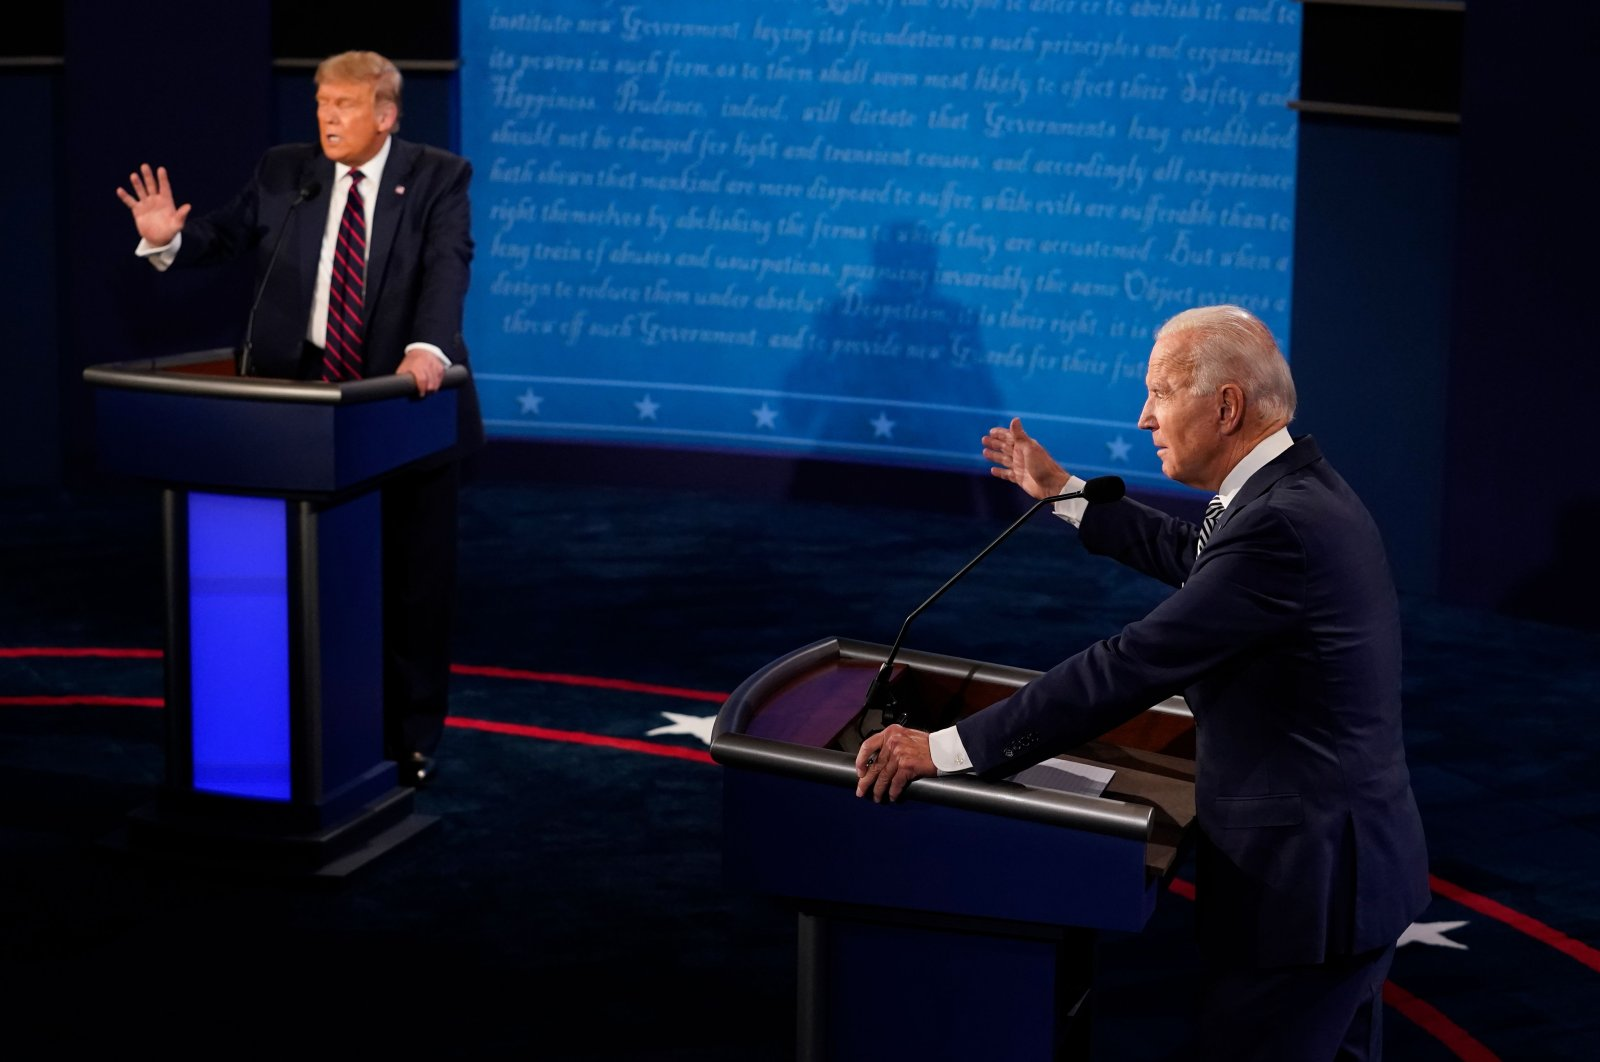 U.S. President Donald Trump and former Vice President and Democratic presidential nominee Joe Biden speak during the first presidential debate at the Health Education Campus of Case Western Reserve University in Cleveland, Ohio, Sept. 29, 2020. (AFP Photo)